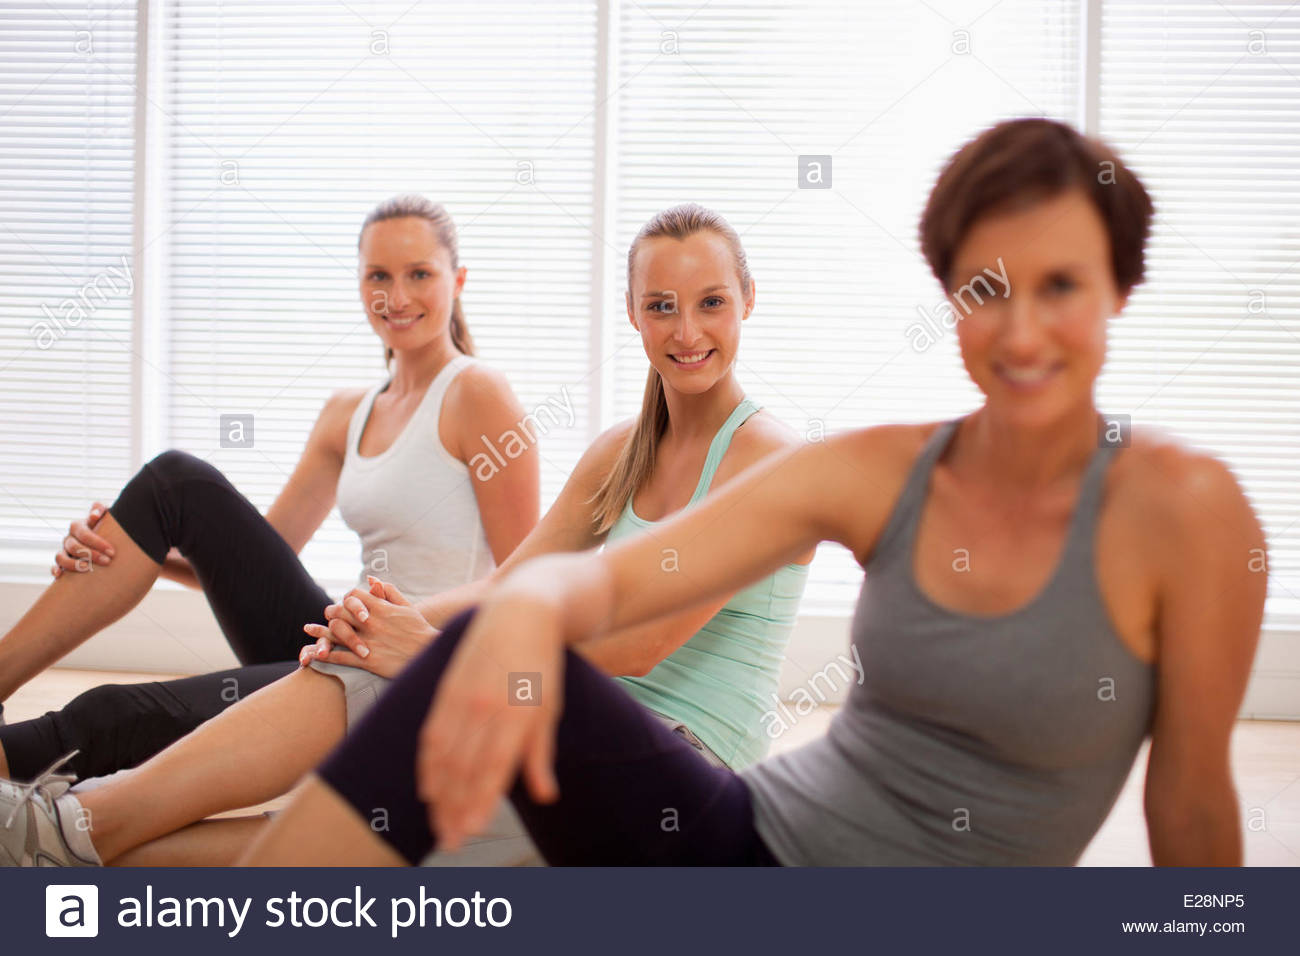 Portrait of smiling women sitting in a row in fitness studio Photo Stock